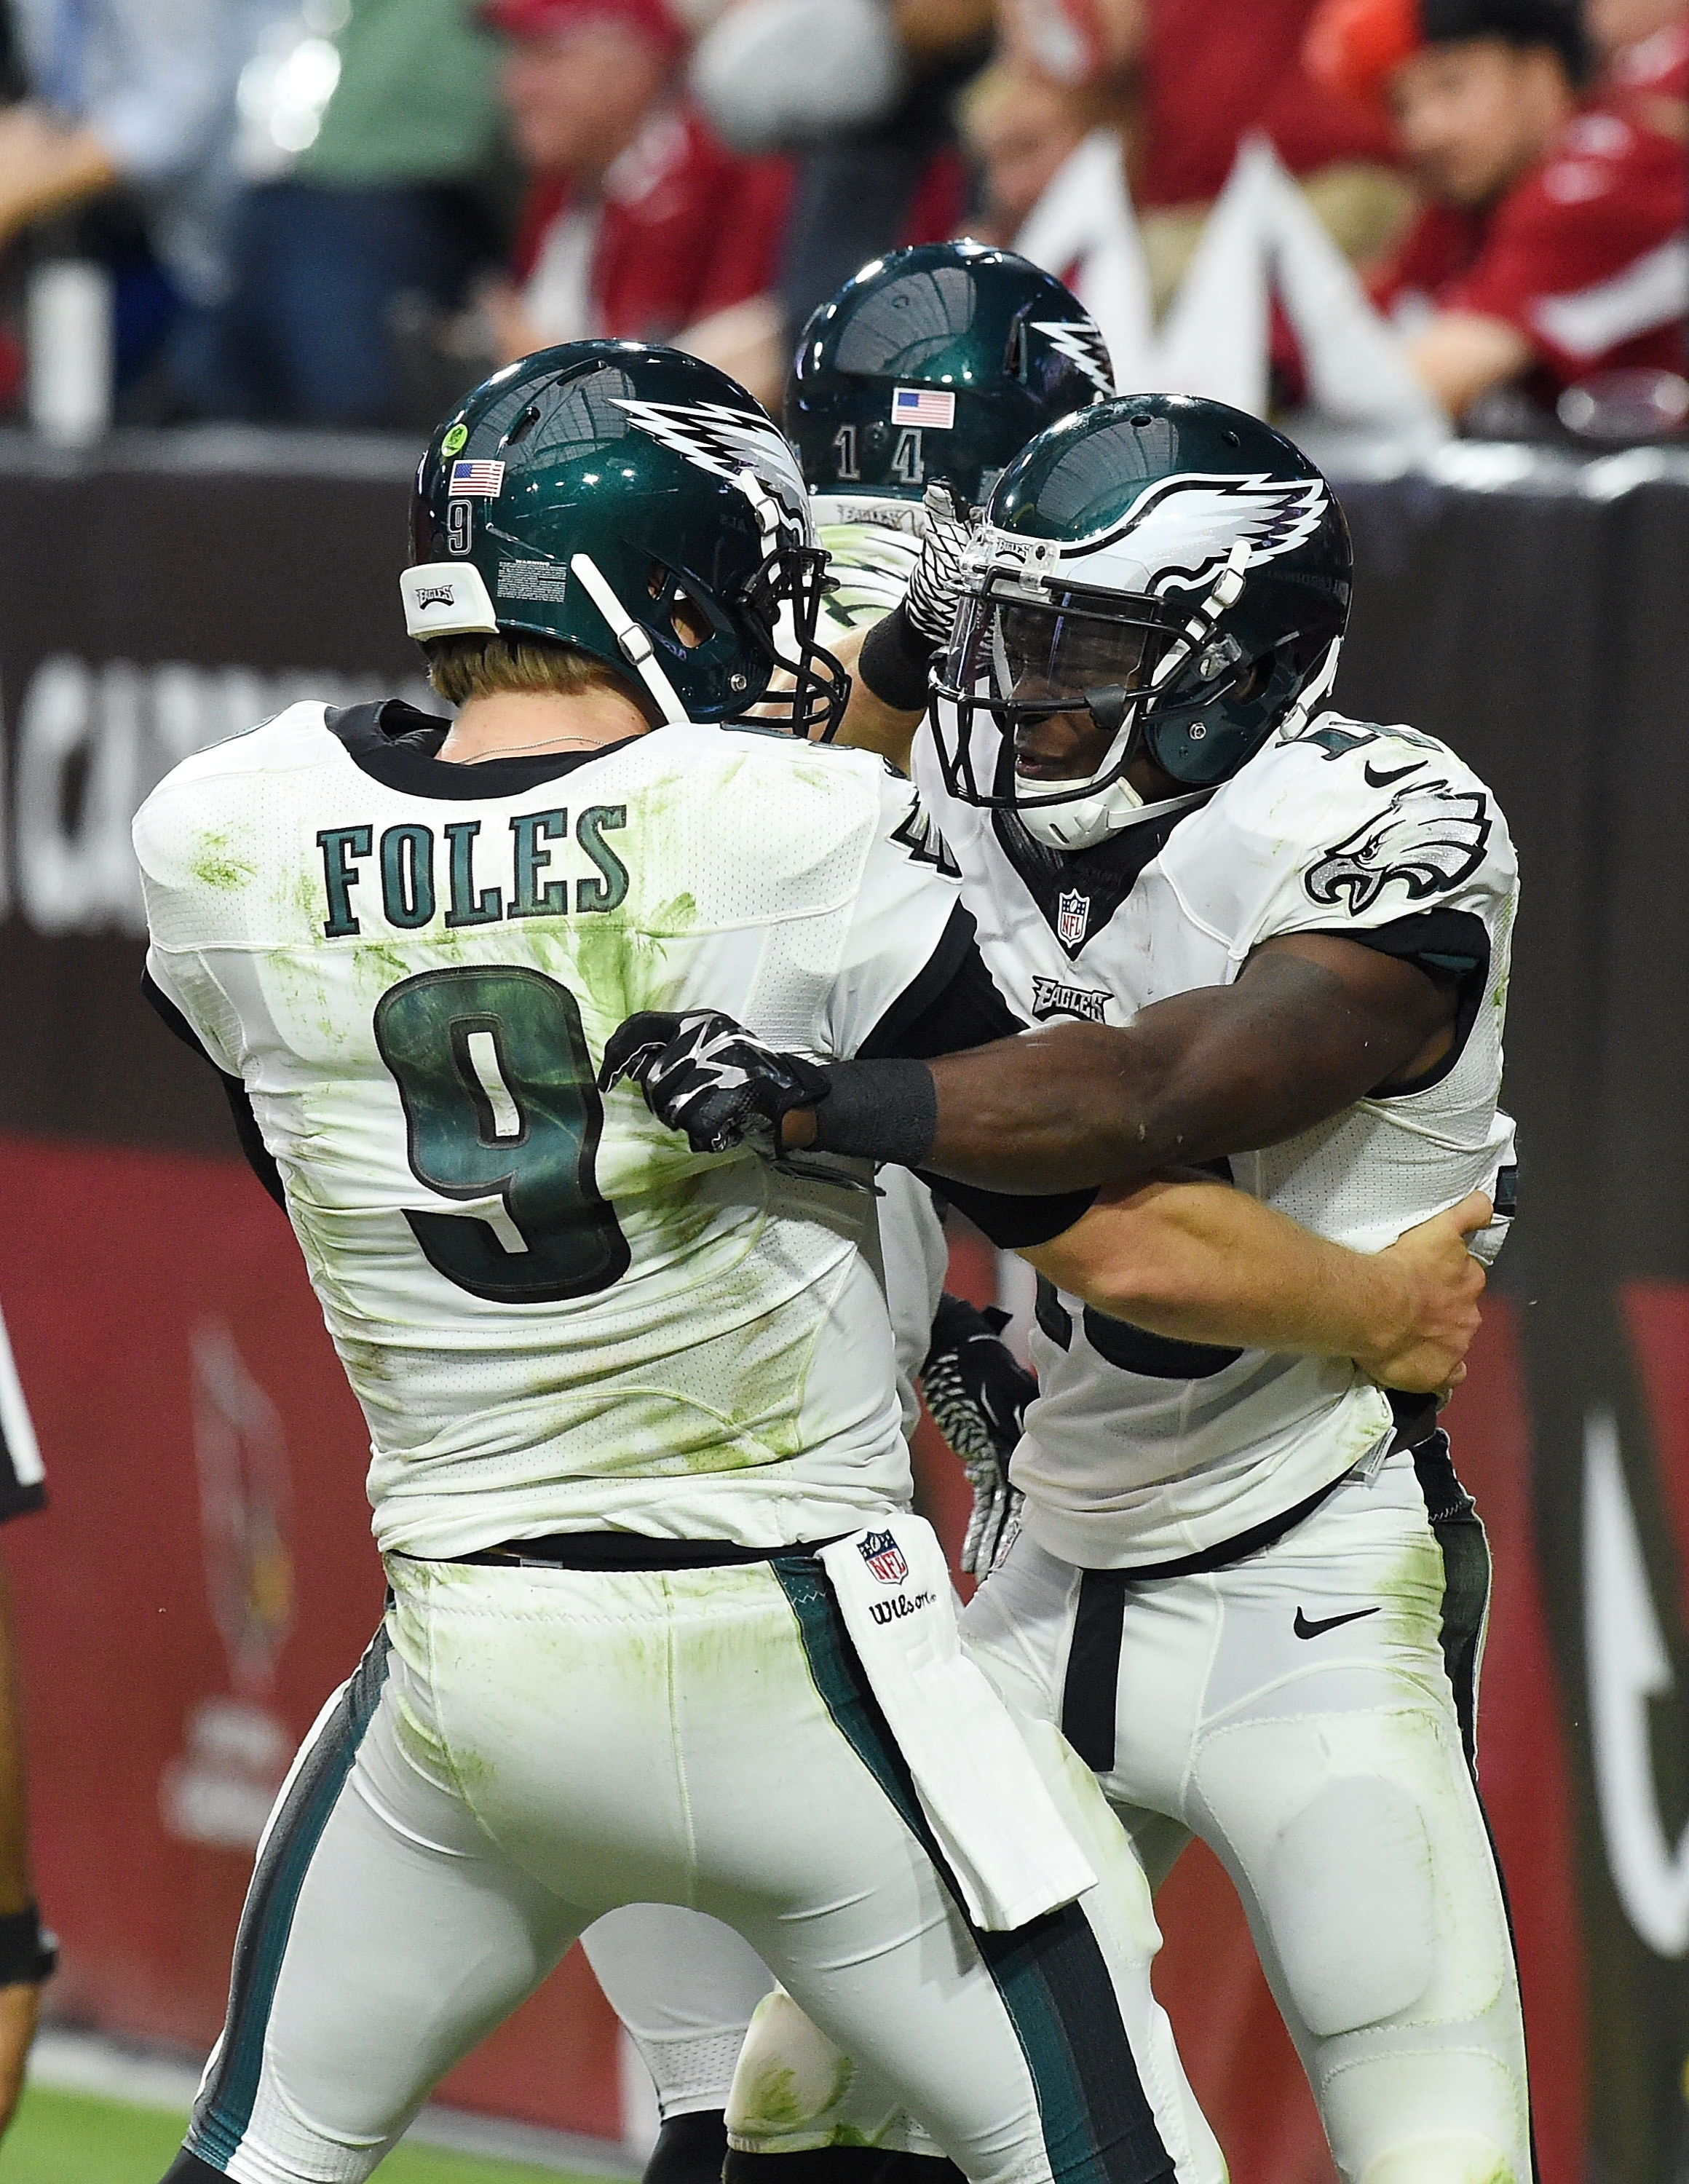 Foles and Maclin, mid-feast (Photo by Norm Hall/Getty Images)